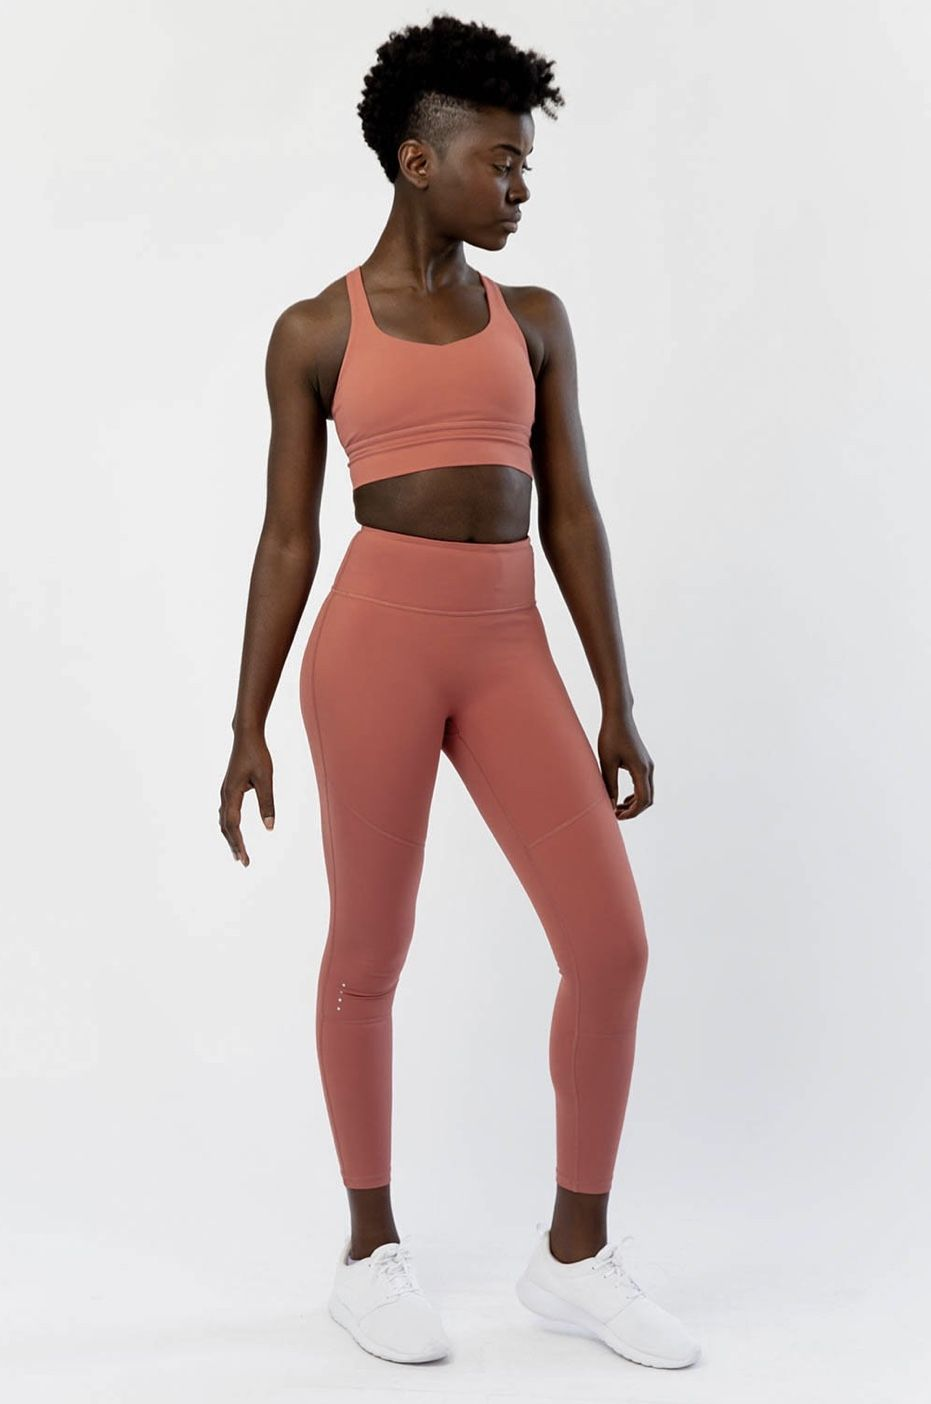 Acta Active Wear With A Purpose Acta Performance Outfit Clothes Workout Clothes